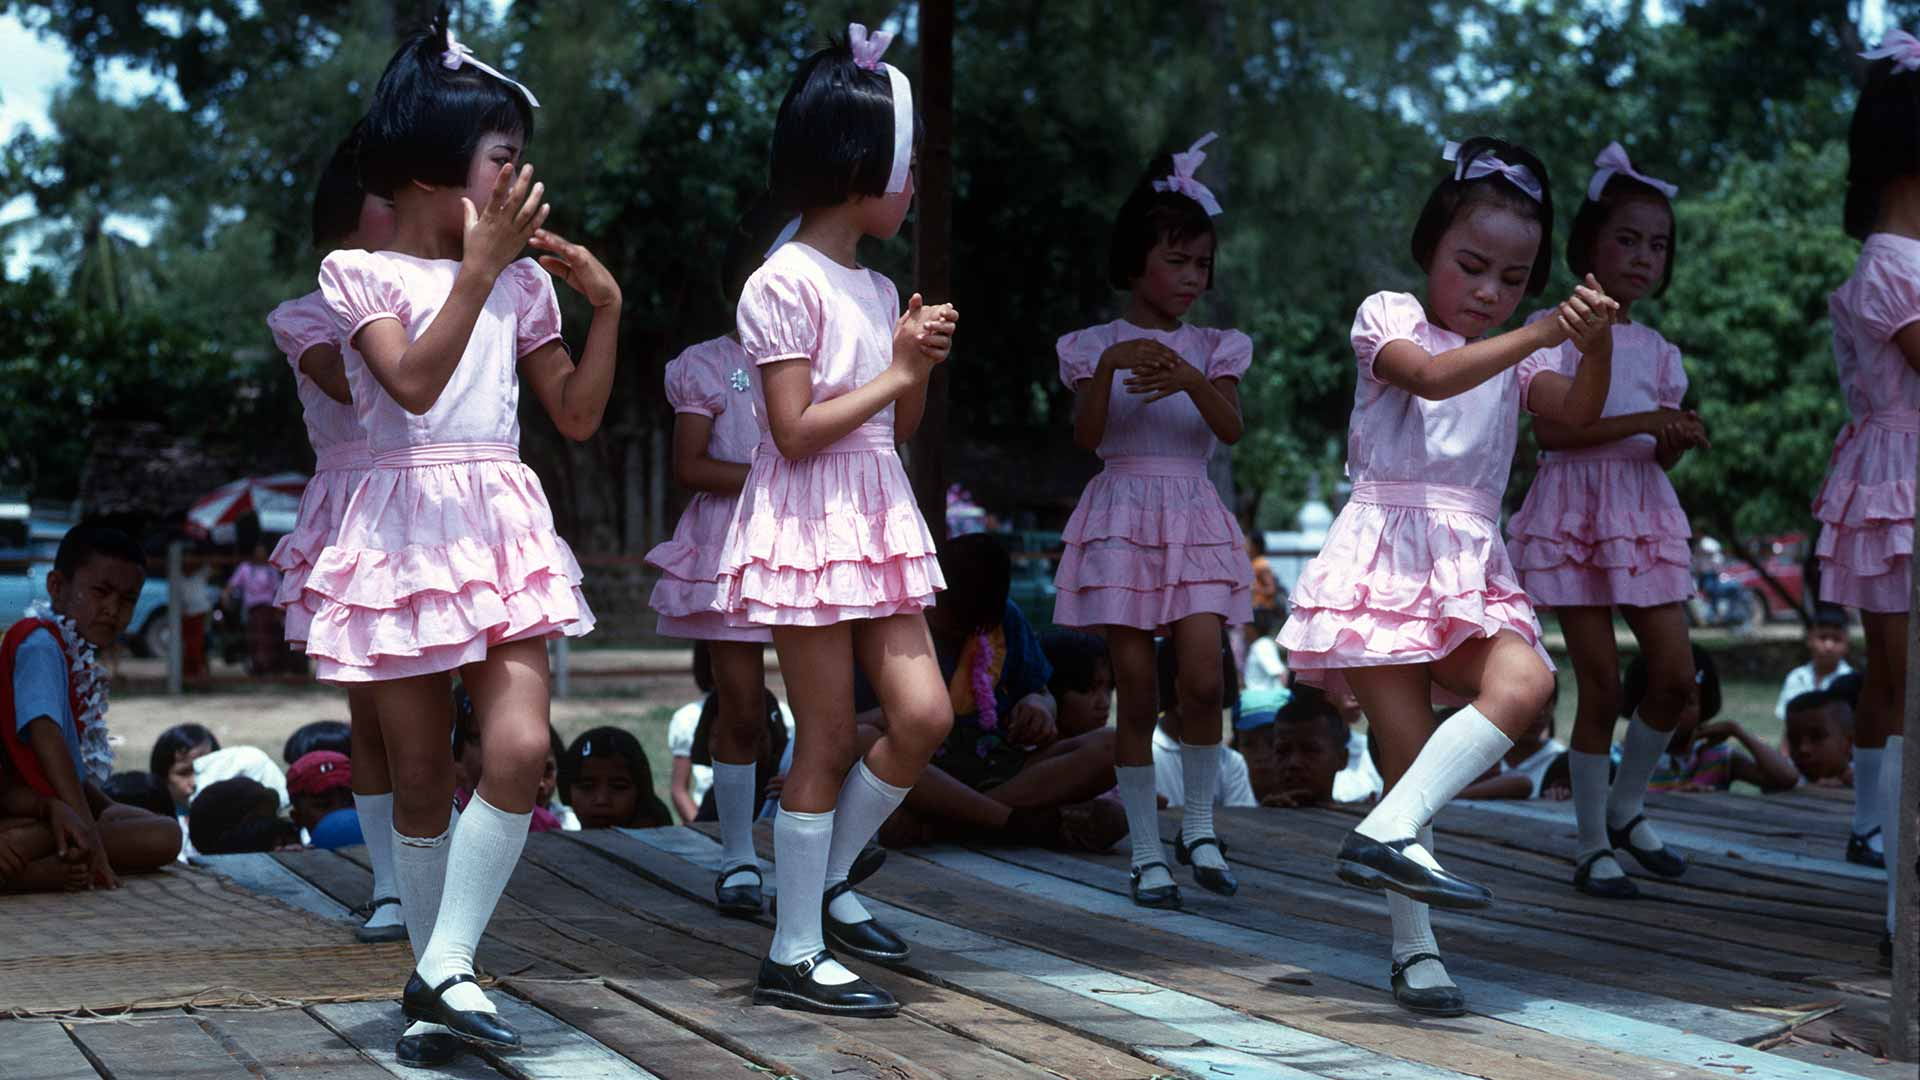 small girls in pink dresses and high white socks dance on a stage